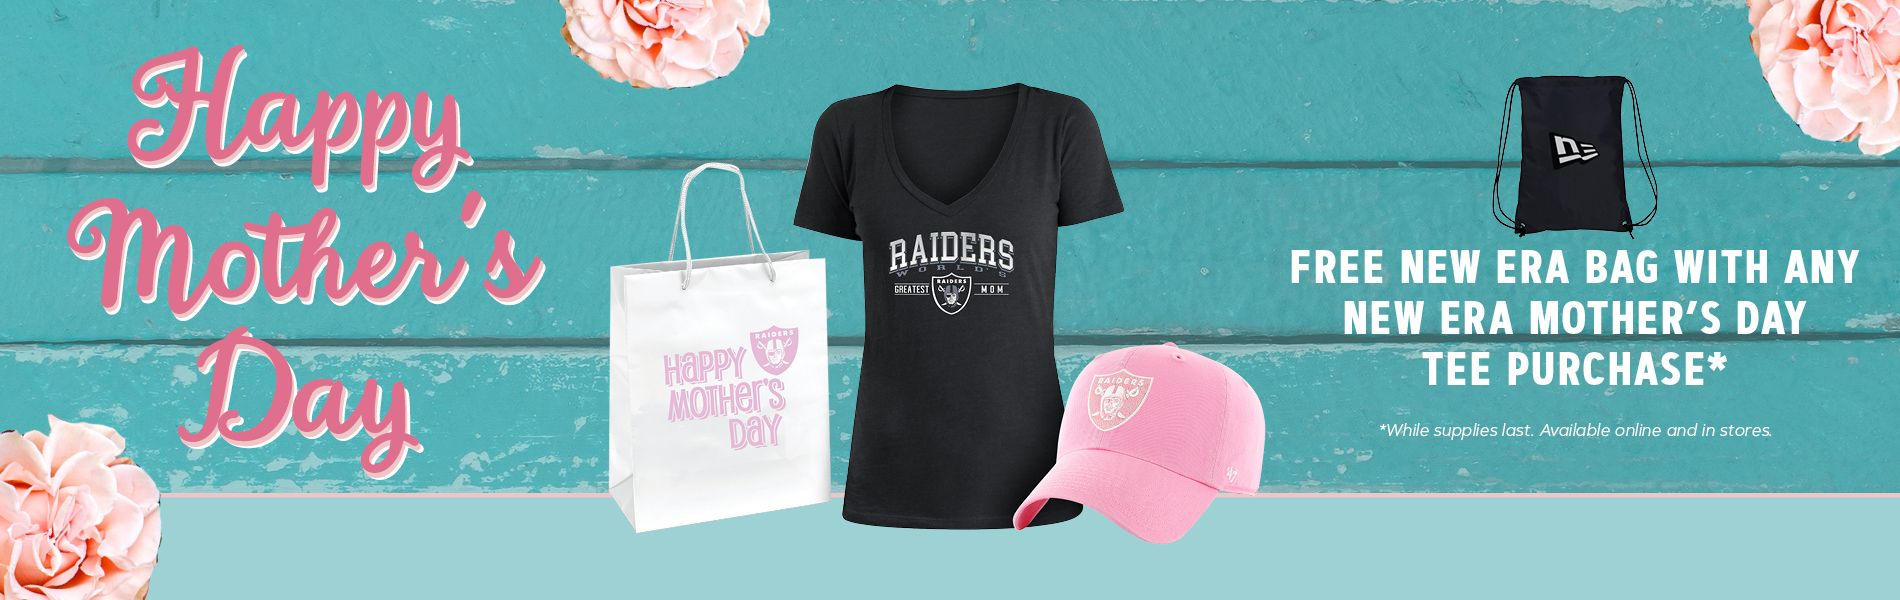 f49bfd99cfa The Raider Image - The Official Store for Oakland Raiders Merchandise